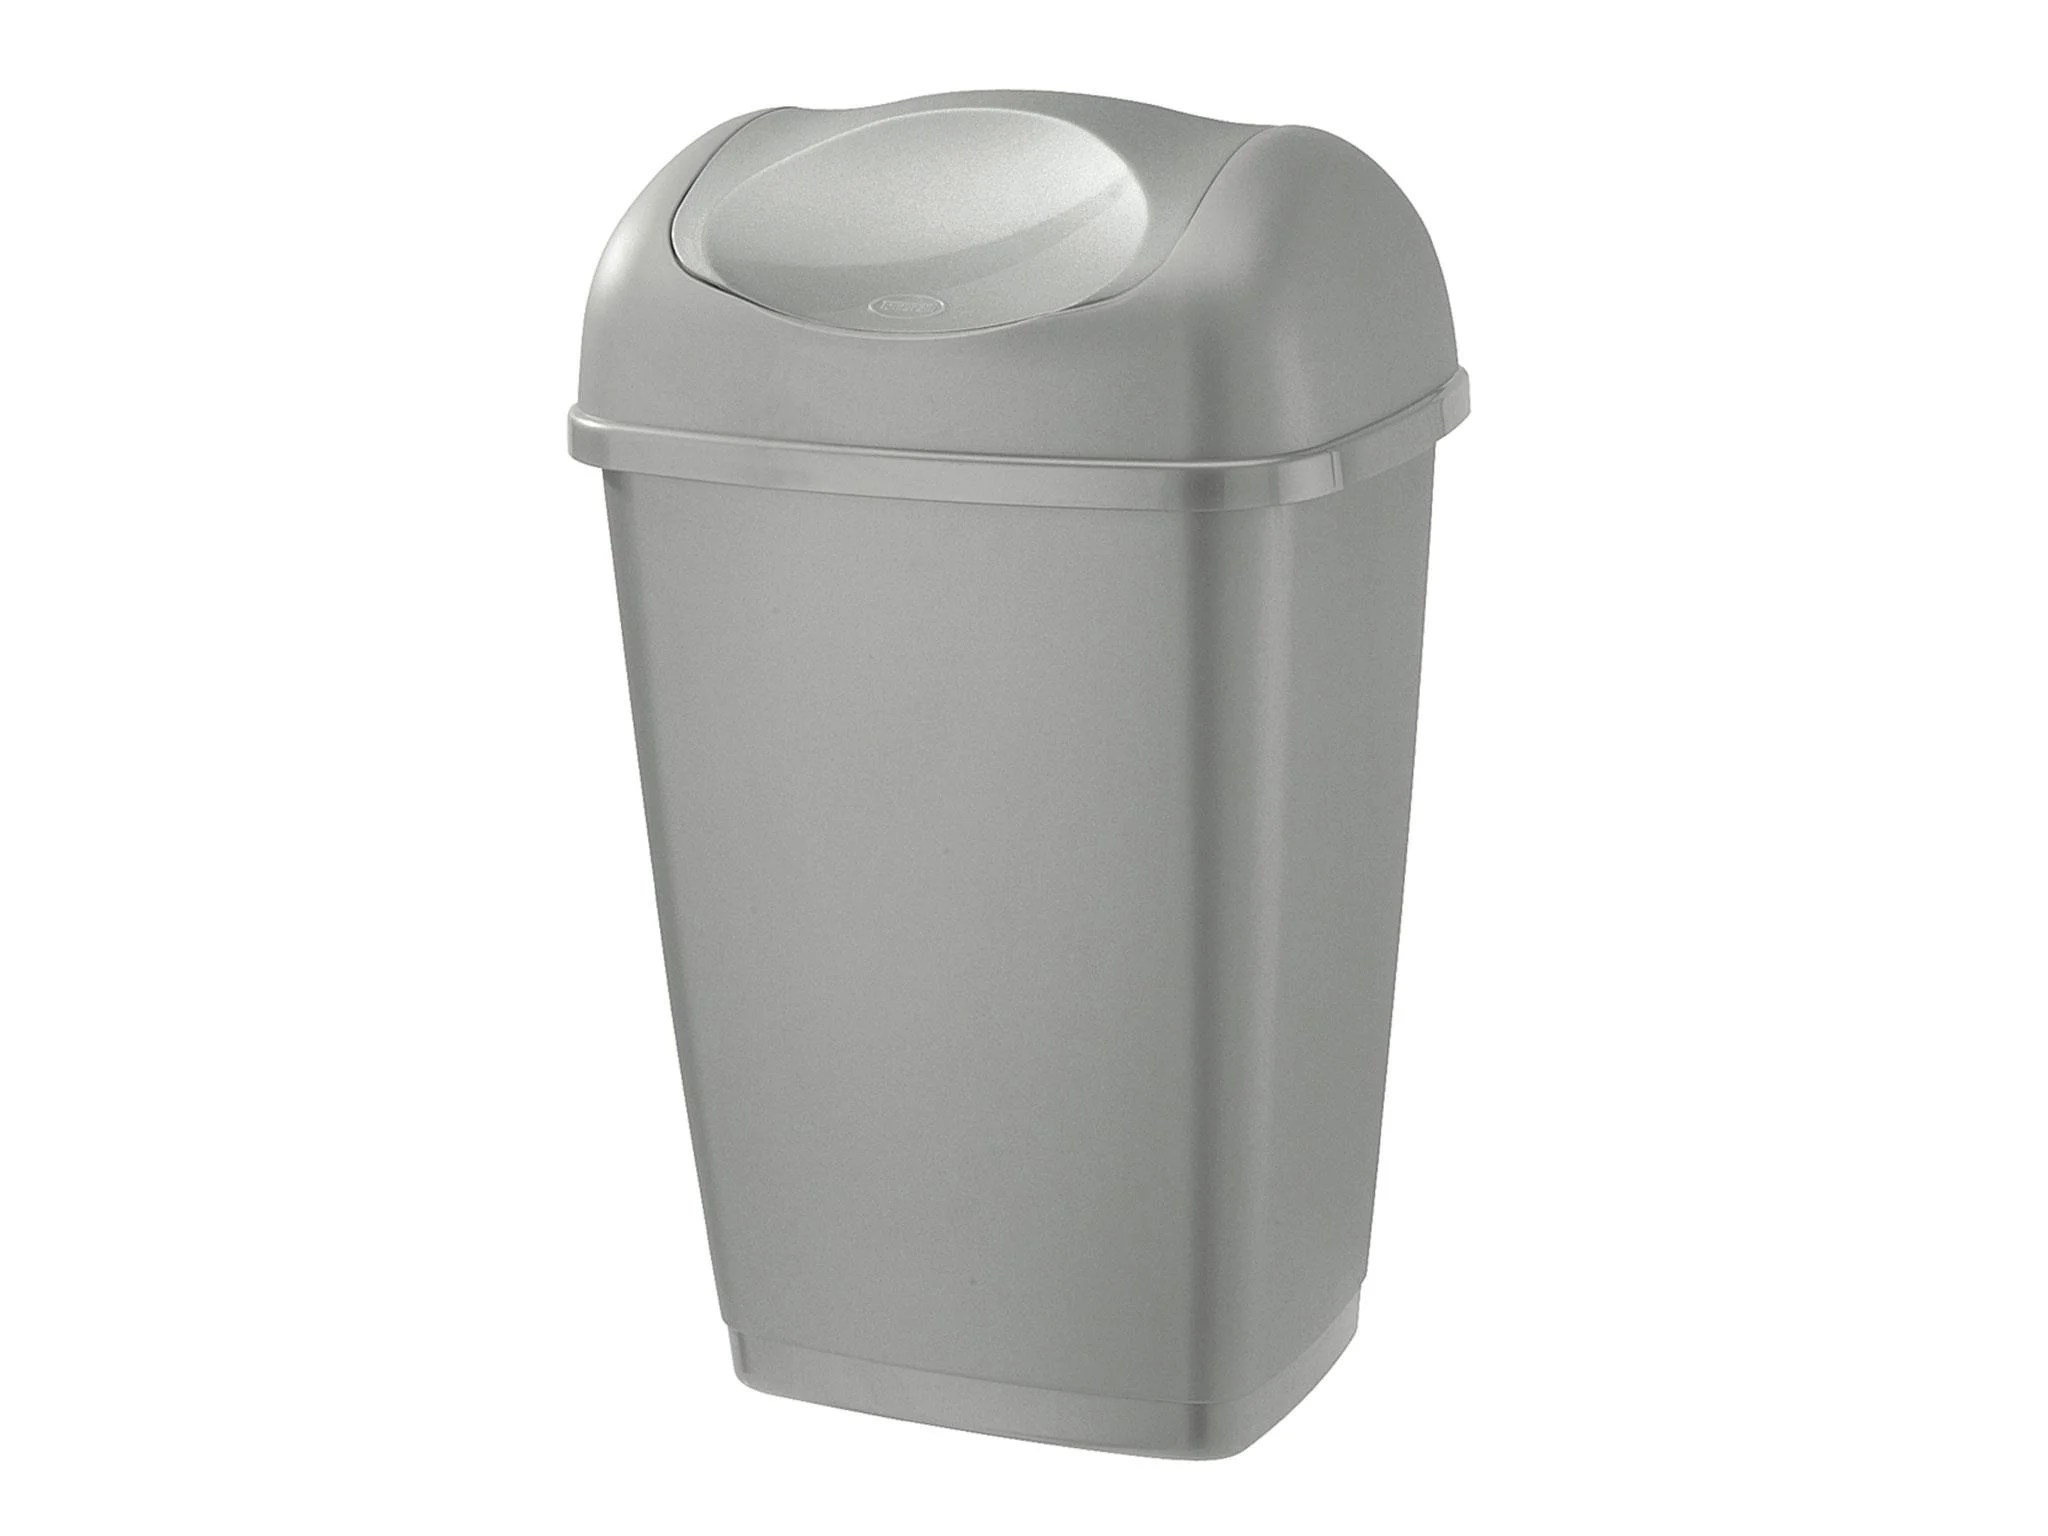 tall kitchen bin home depot cabinet hardware 10 best bins the independent but it s a great bargain for no nonsense frills rubbish that fits